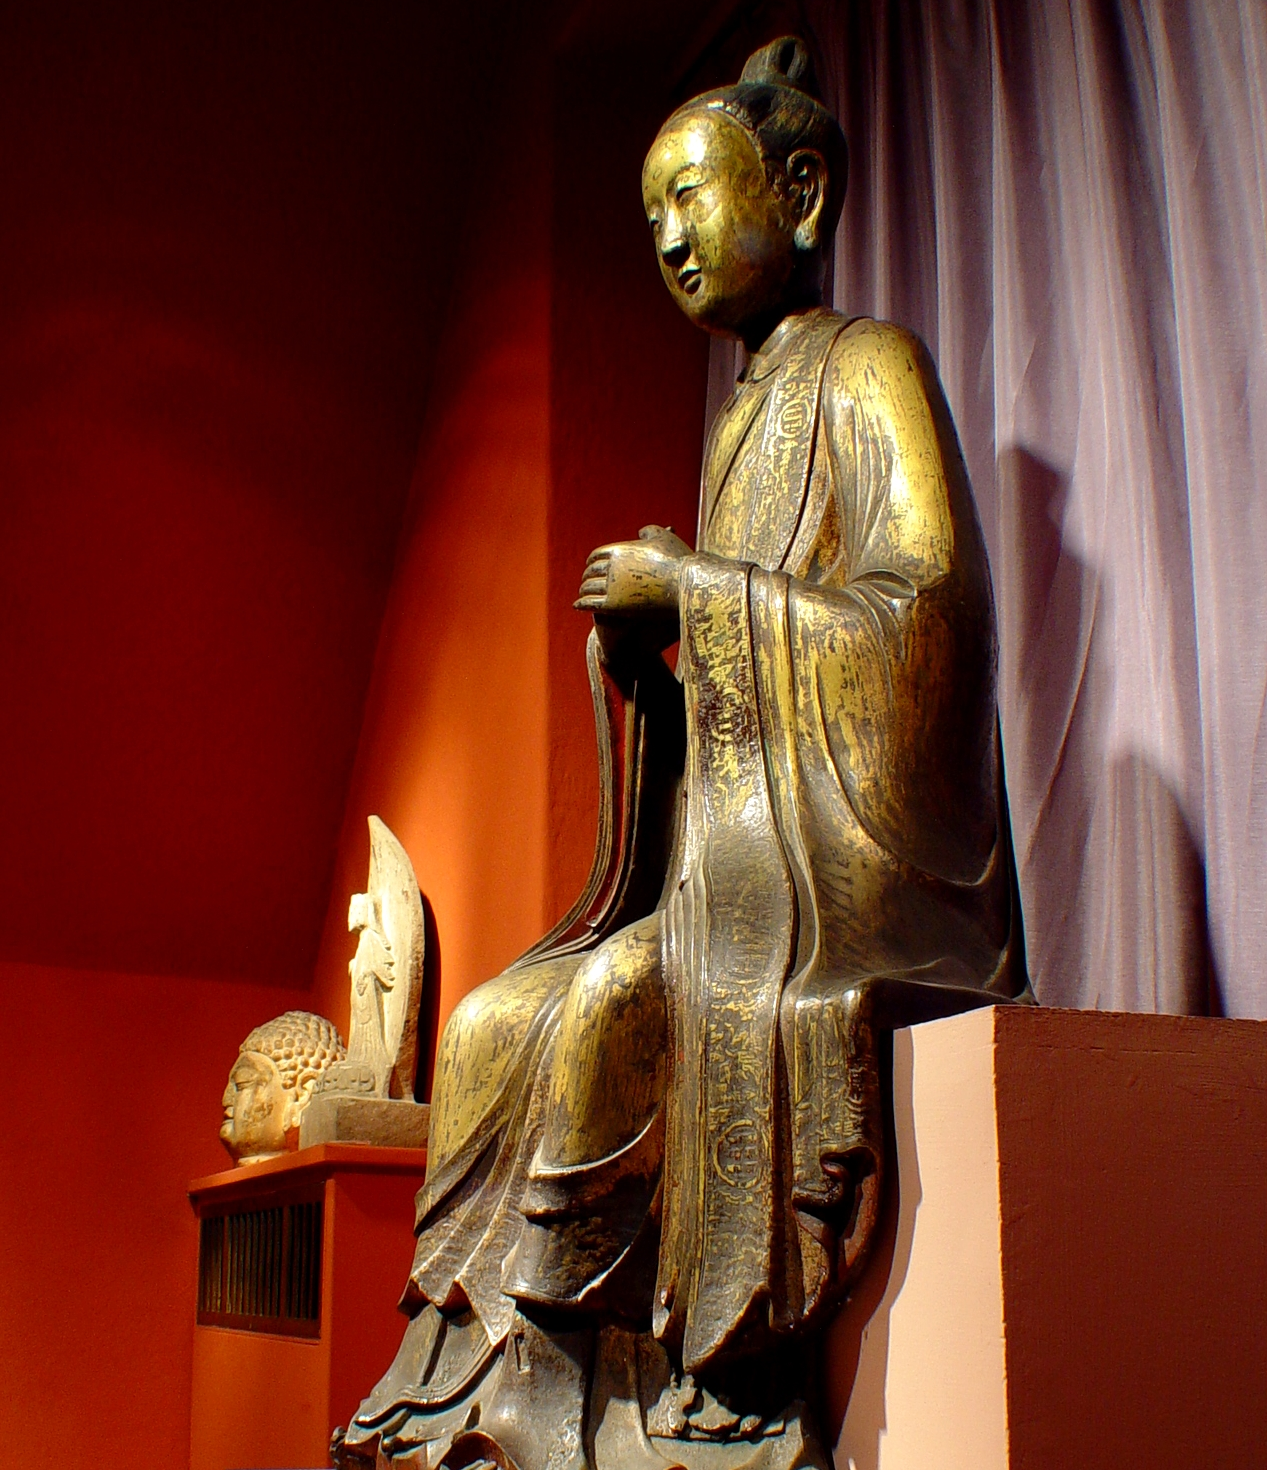 Taoist dignitary from the Ming Dynasty (1368-1644 AD).